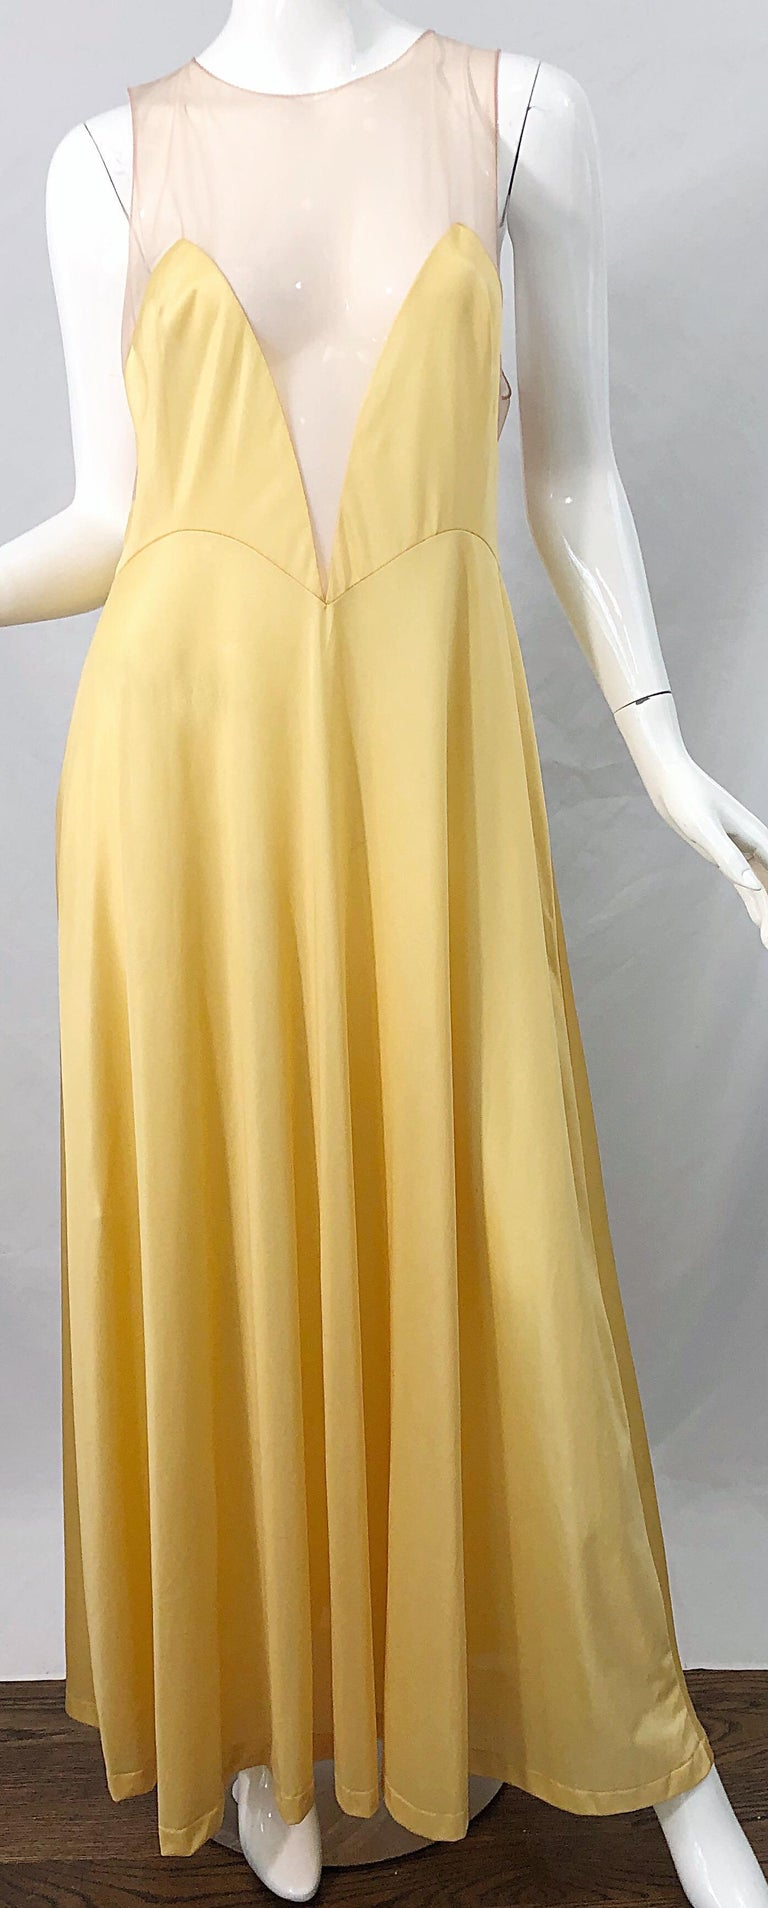 1970s Nude Sheer Caftan and Large Size Yellow Vintage 70s Nightgown Maxi Dress 9